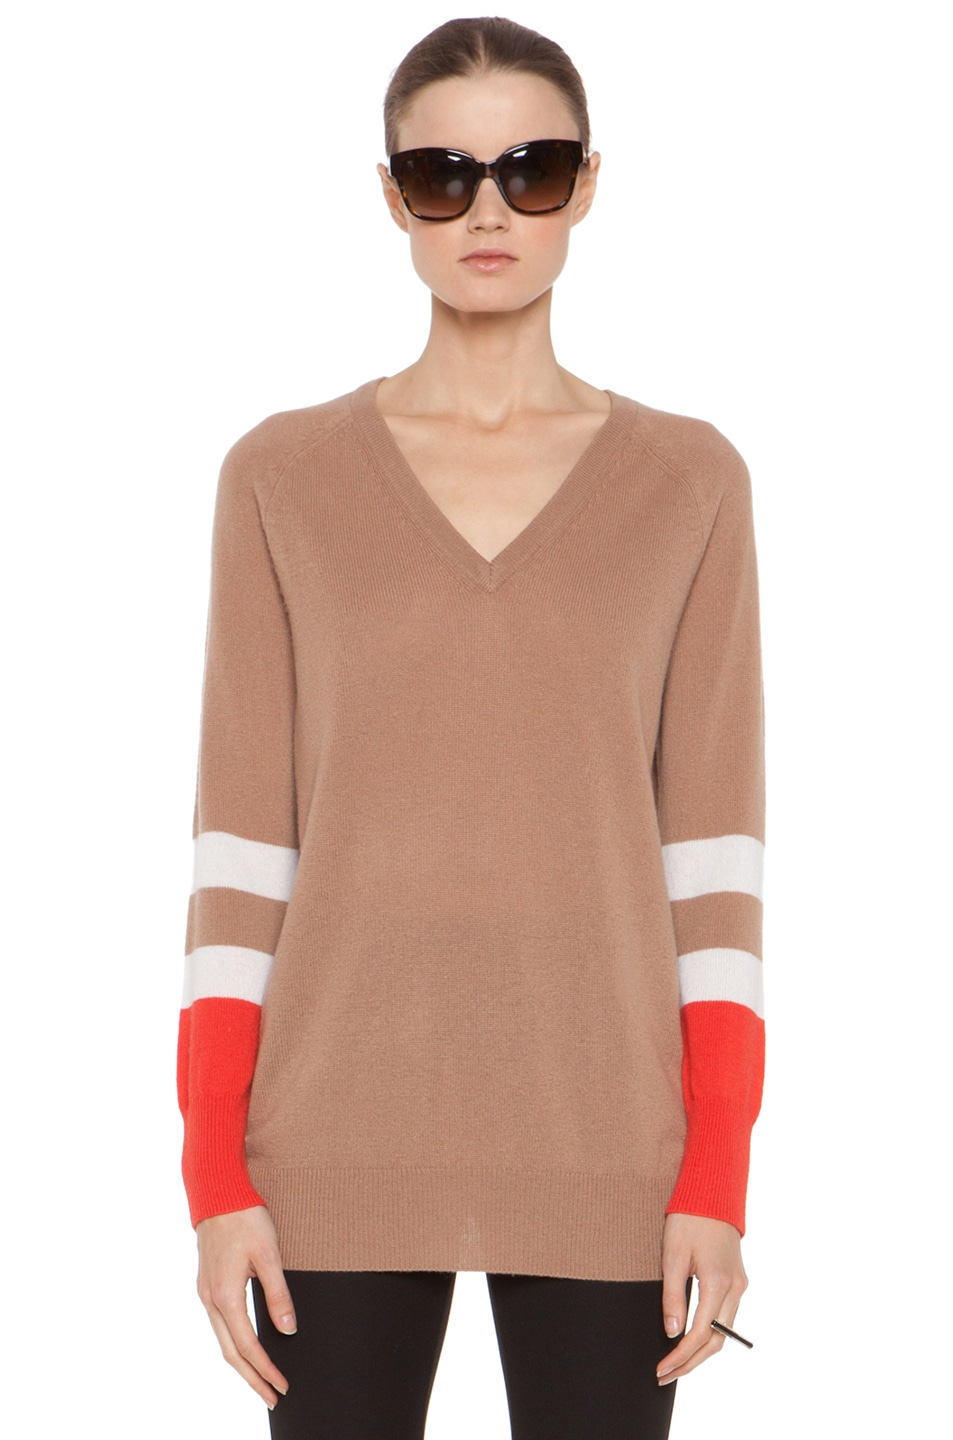 Image 2 of Equipment Asher V Neck Cashmere Colorblock Pullover in Camel